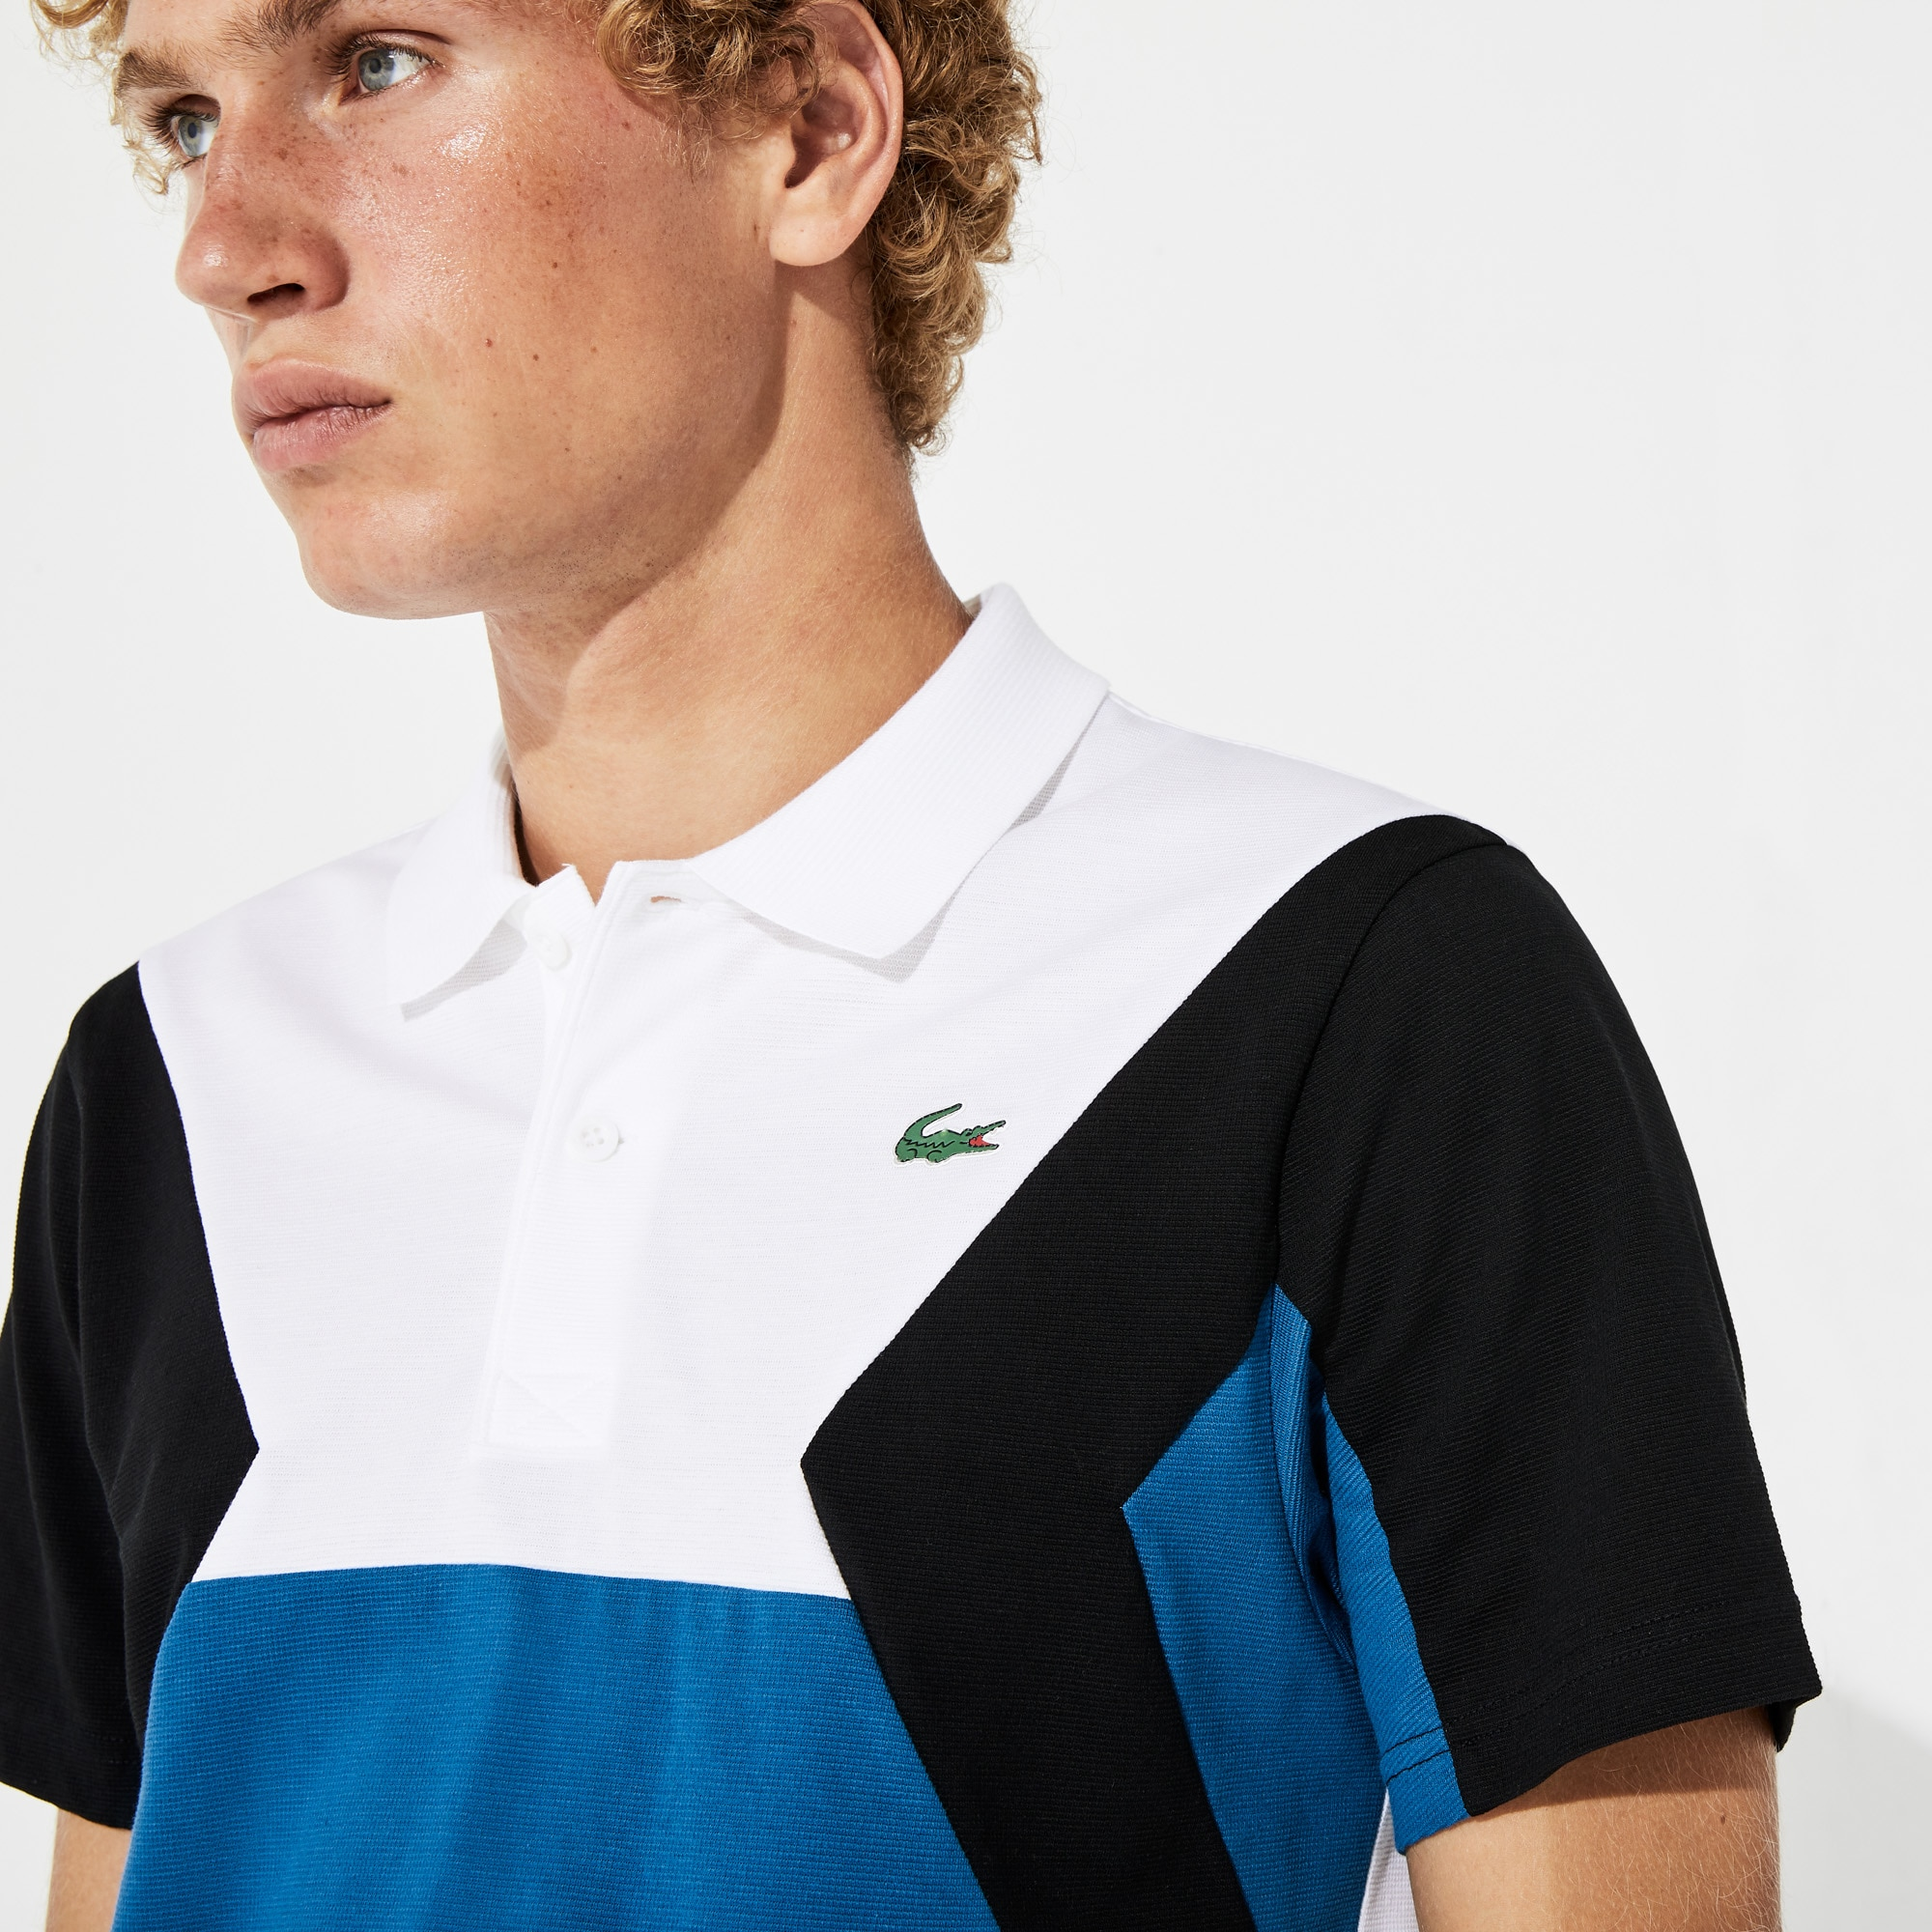 Herren LACOSTE SPORT Ultra-Light-Poloshirt mit Colourblocks